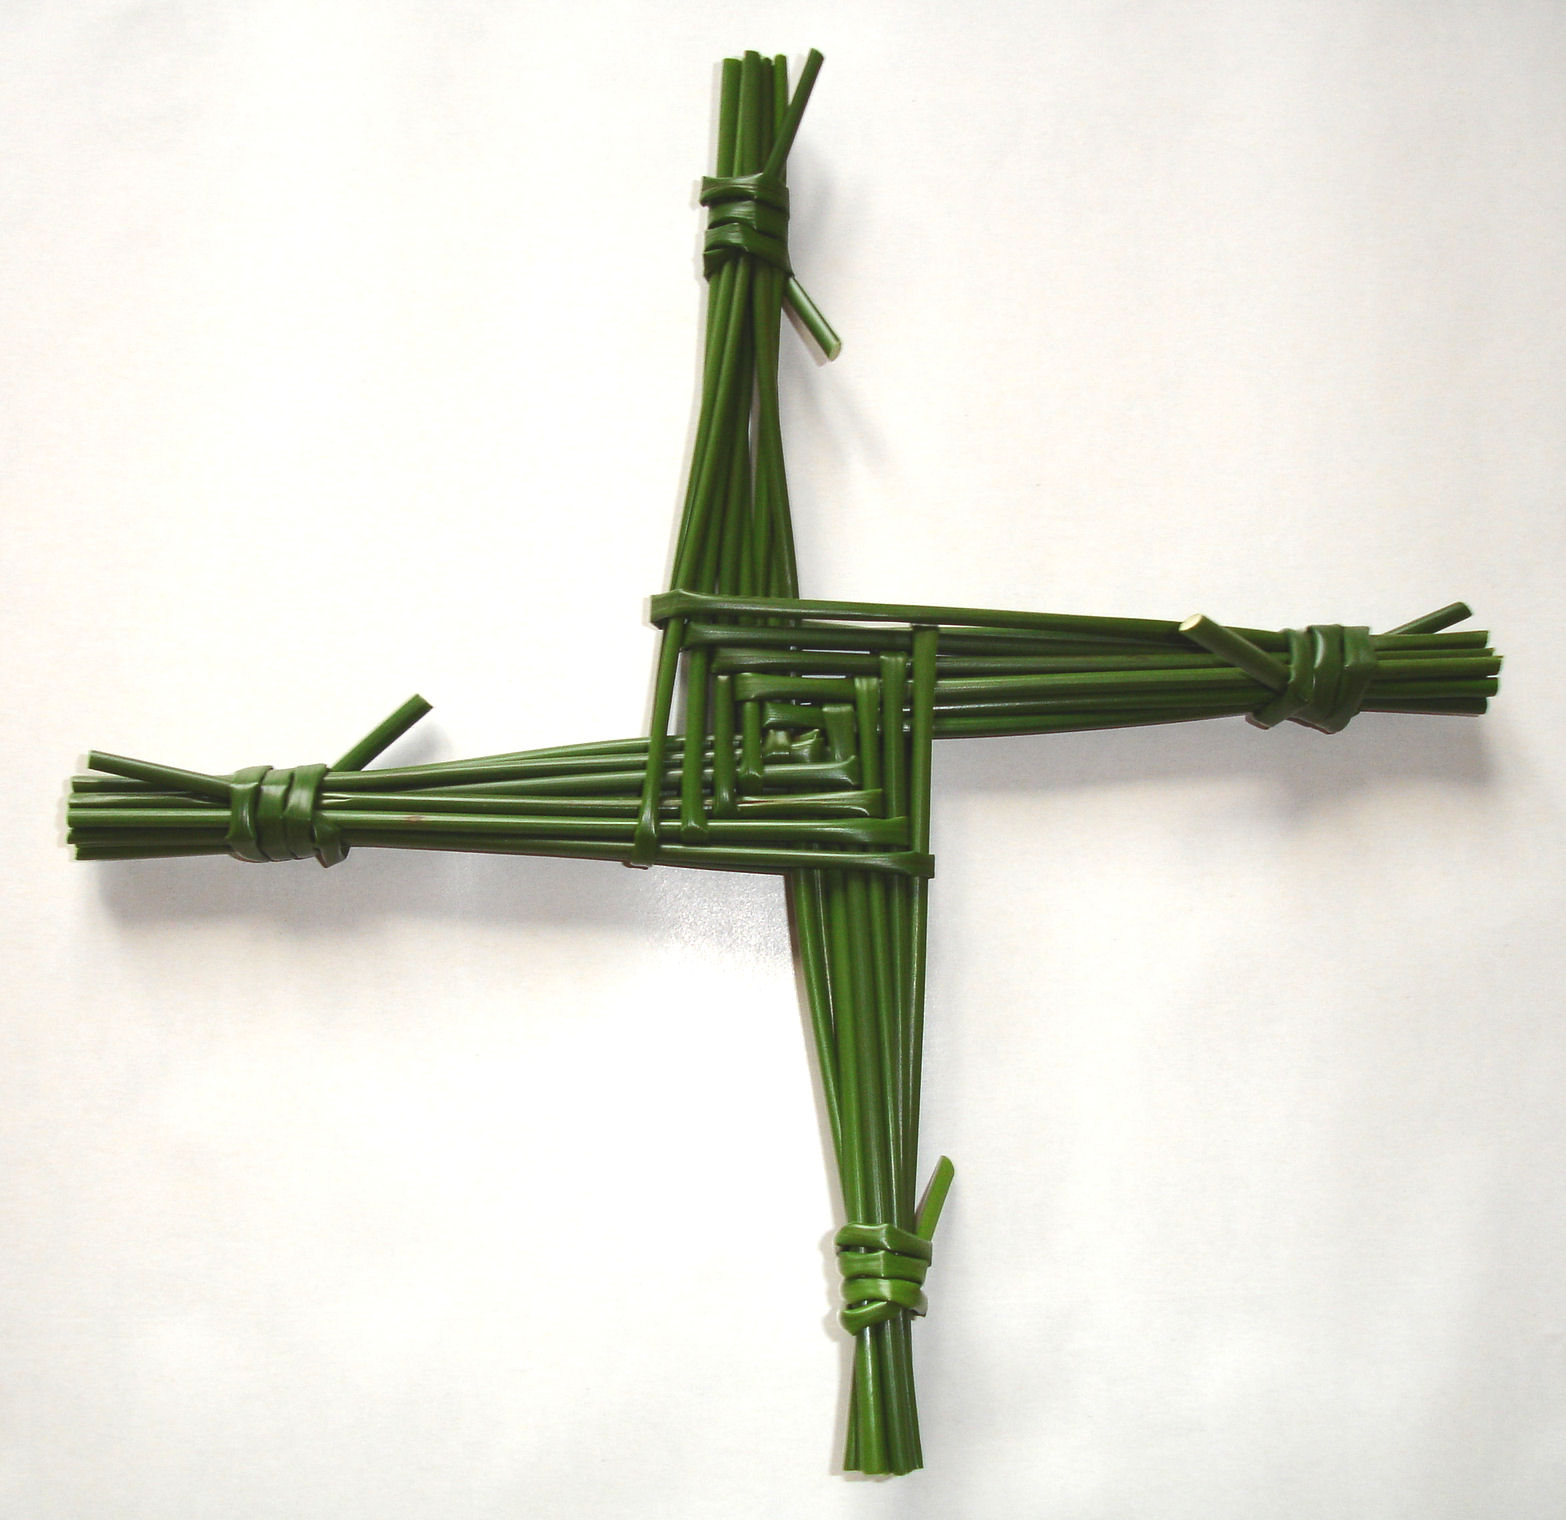 Legend says that while St. Brigit sat alongside a dying man one night, she picked up a handful of rushes from the floor and wove a cross, explaining the Gospel to the dying man as she made the cross. Nowadays many make similar crosses and hang them up to protect their house or barn until the next February.